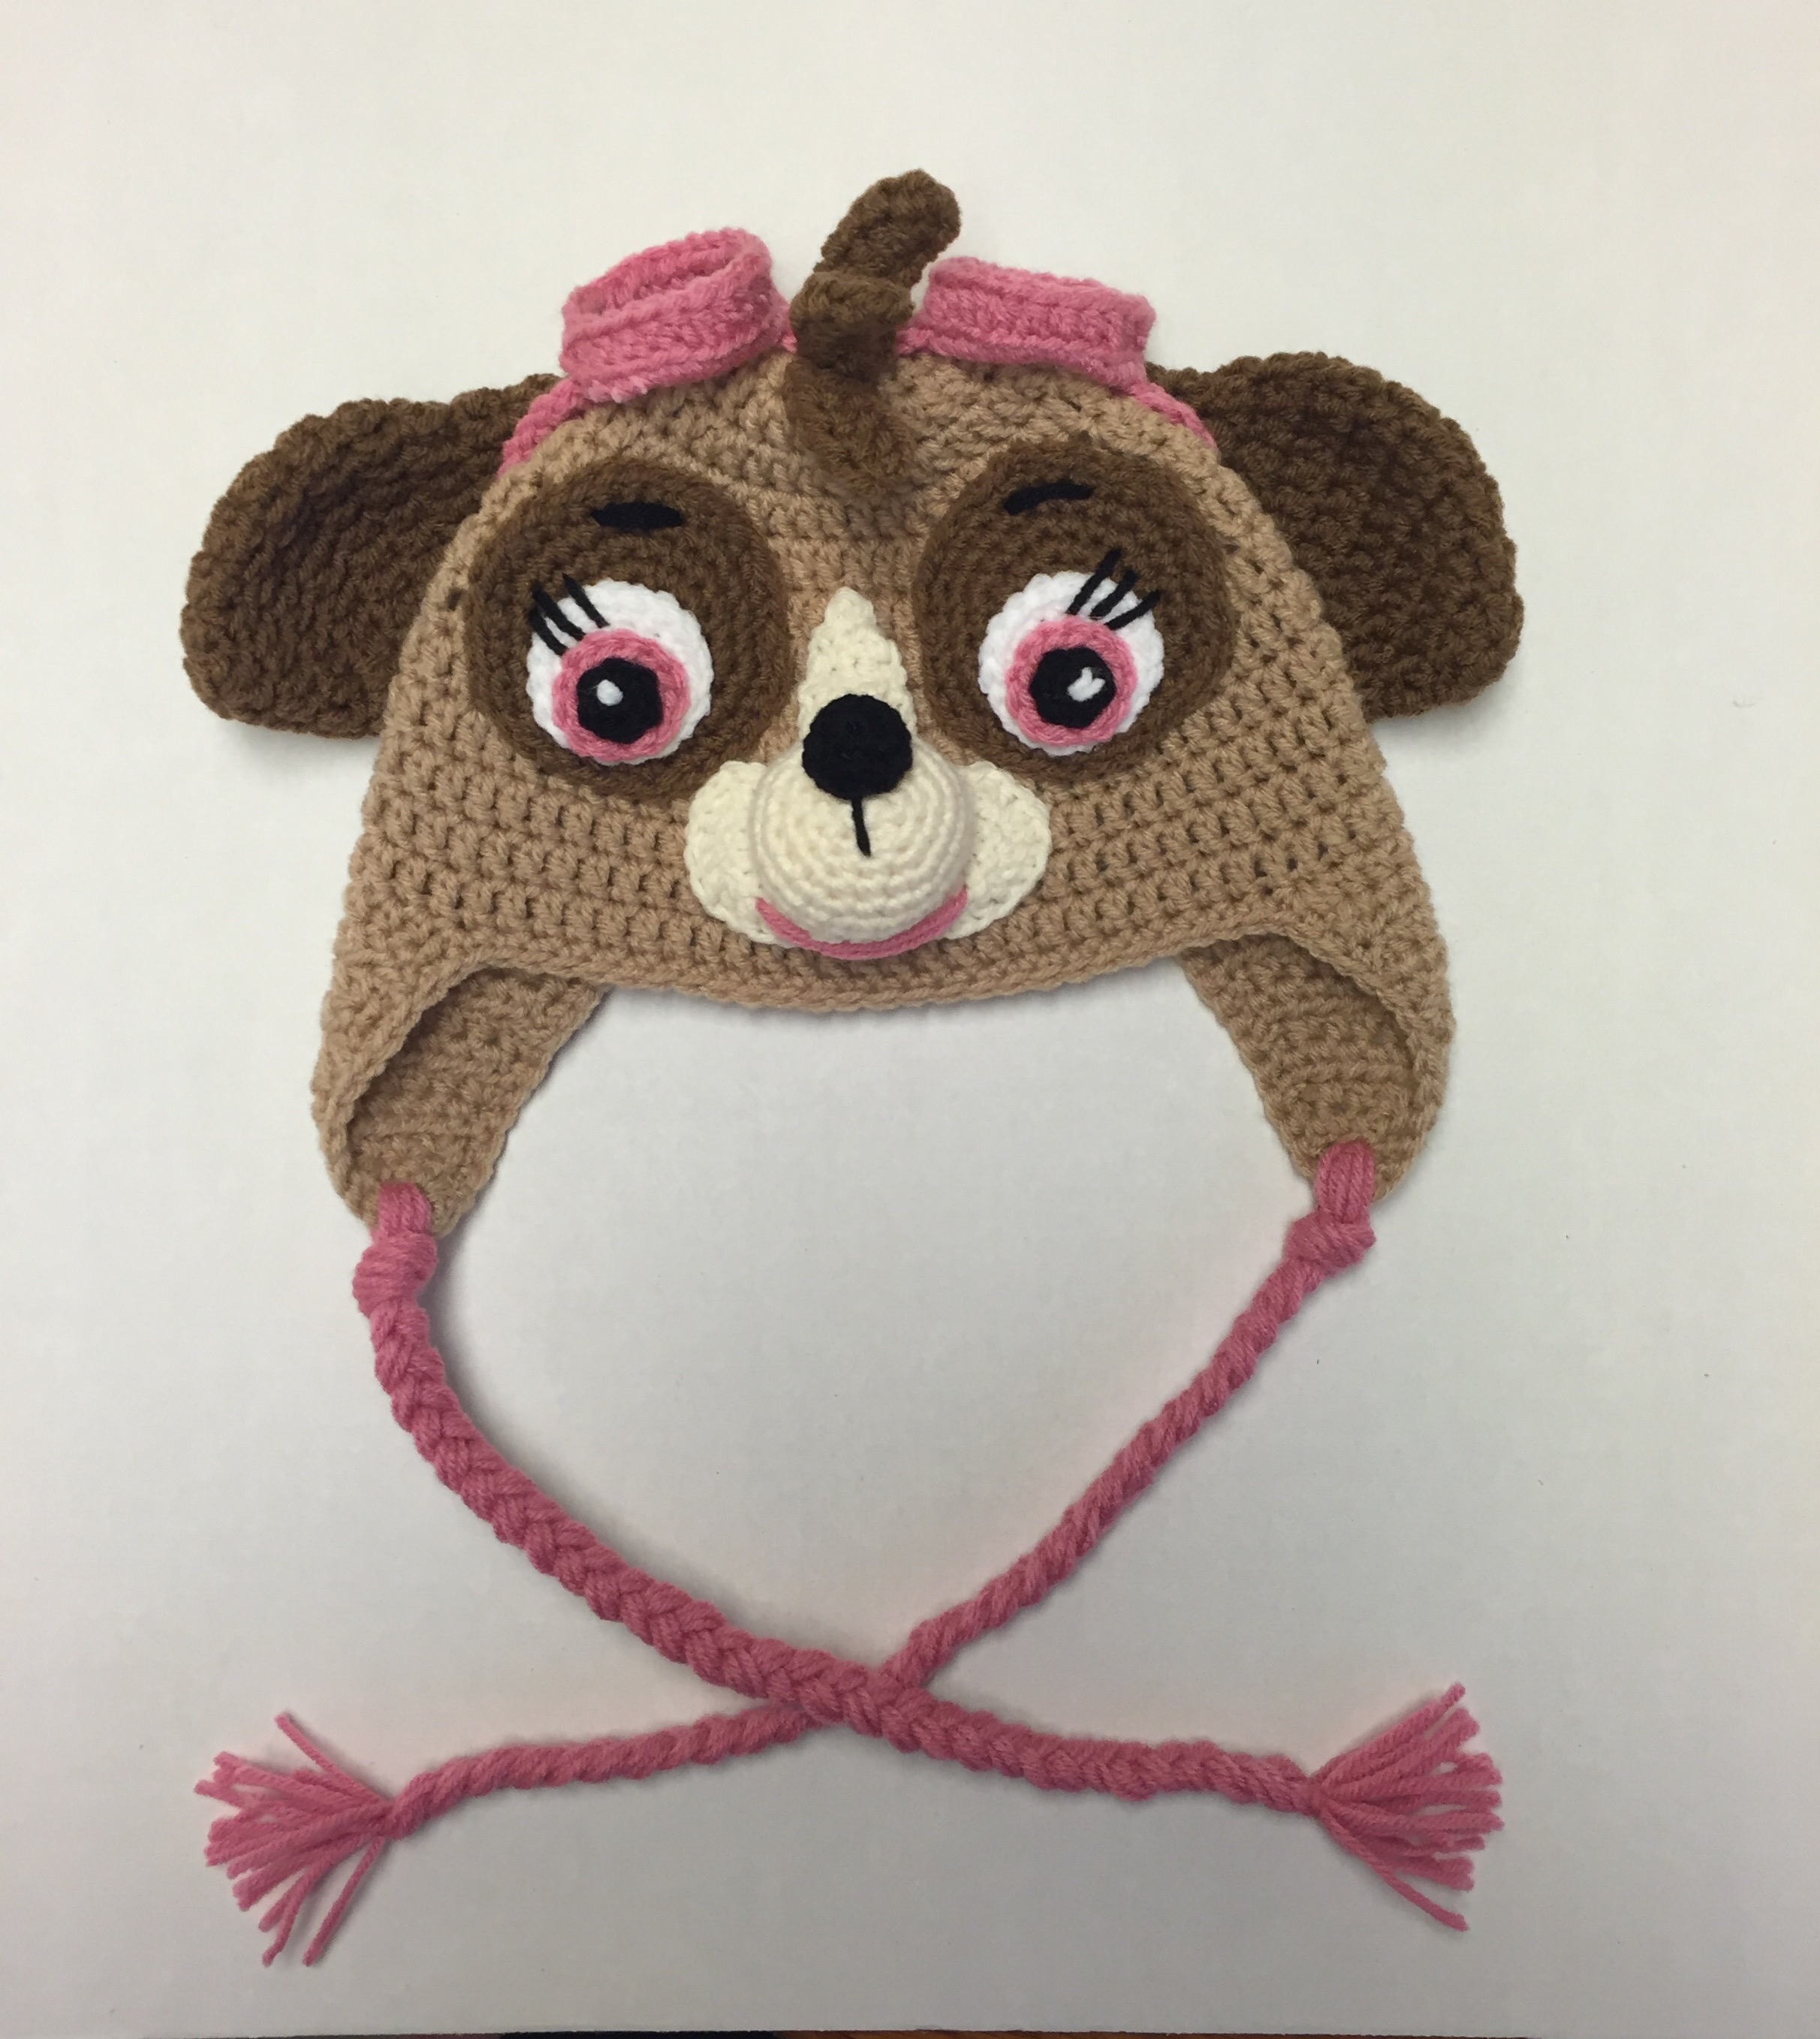 Who loves Paw Patrol? Hey Can You Crochet Me A...Blog